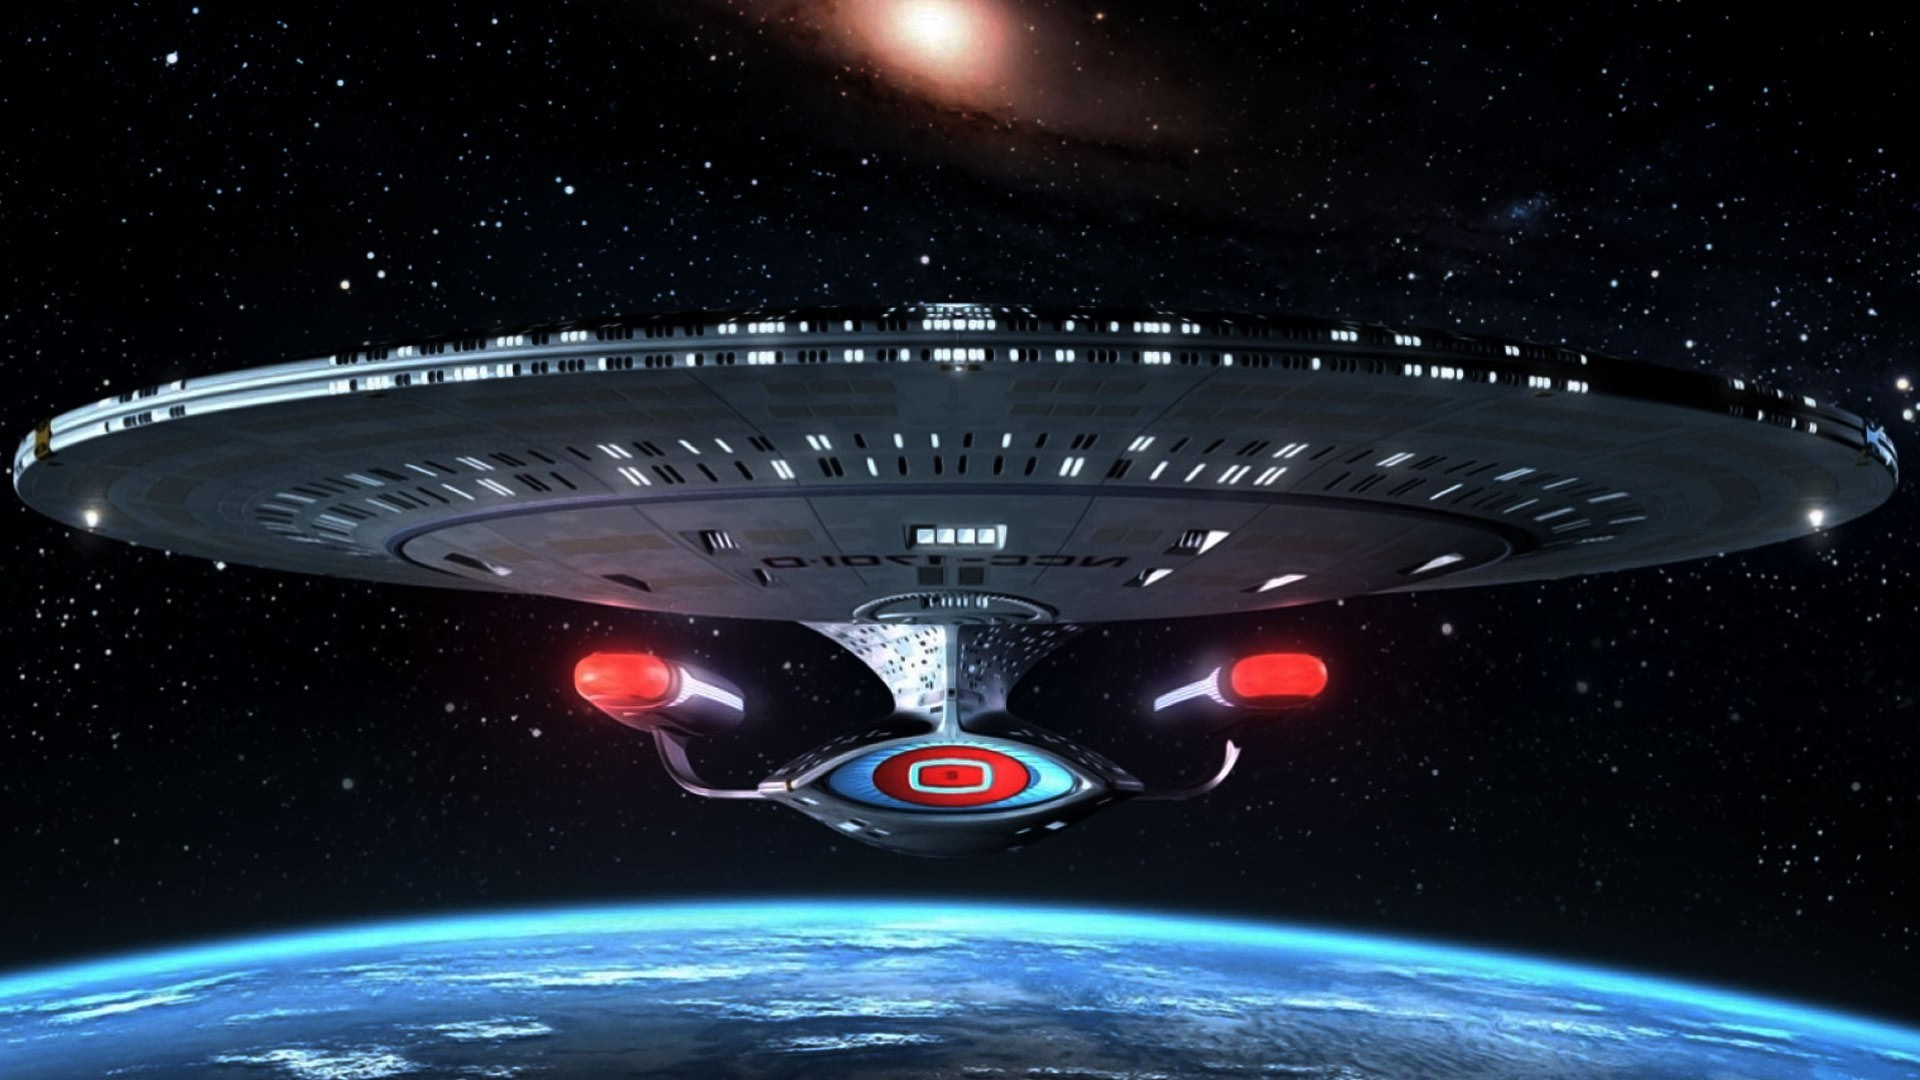 Star Trek Enterprise Wallpaper (74+ Images